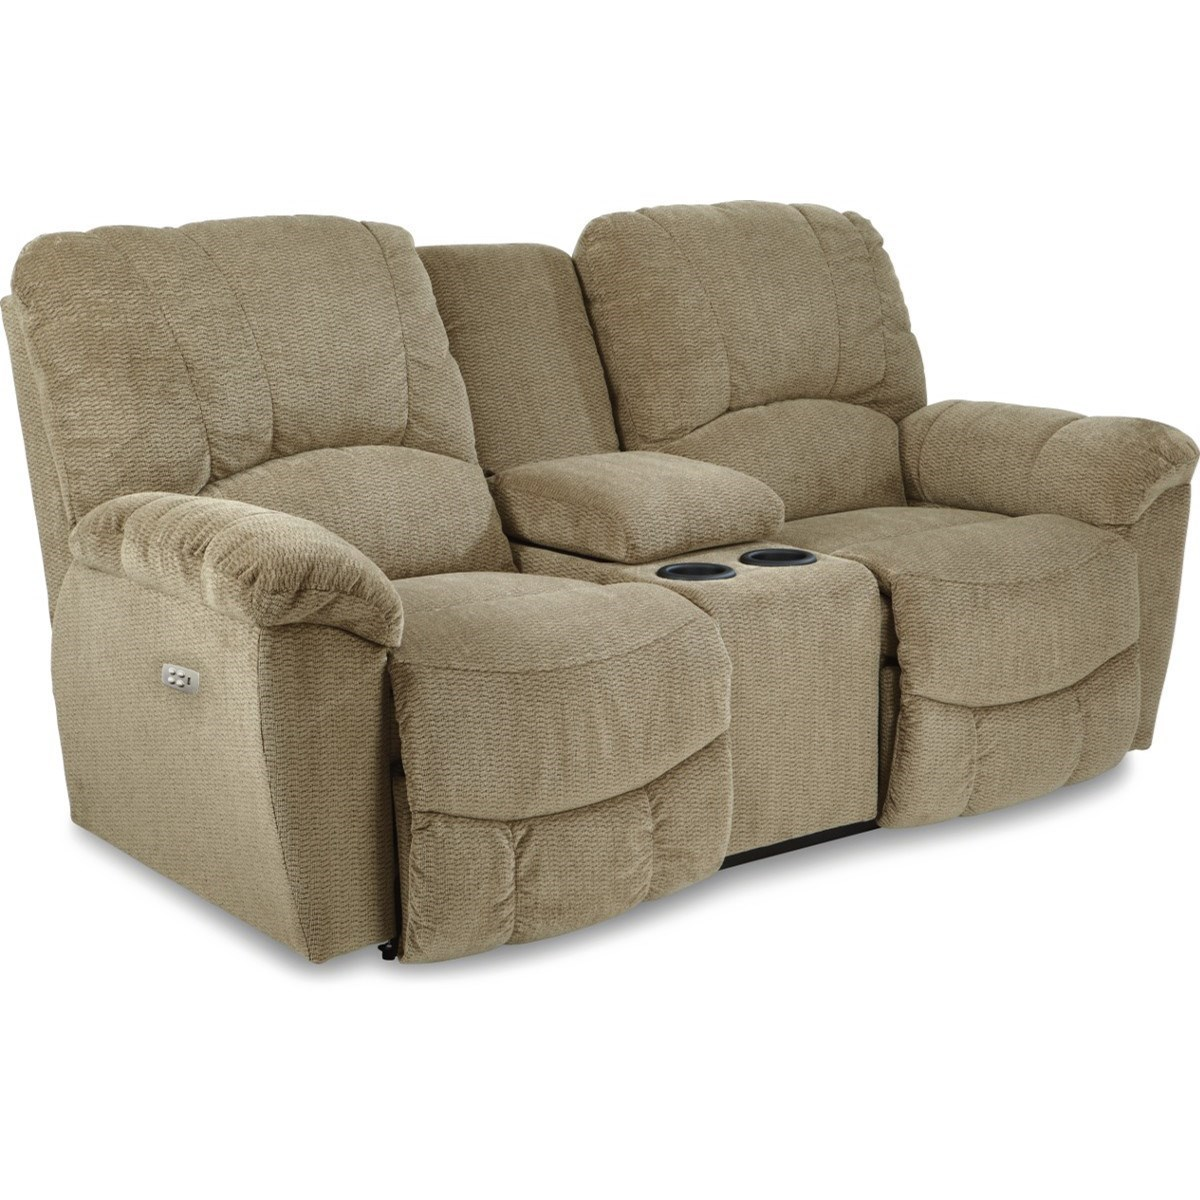 Casual Power La-Z-Time®Full Reclining Loveseat with Middle Console and Channel-Stitched Back